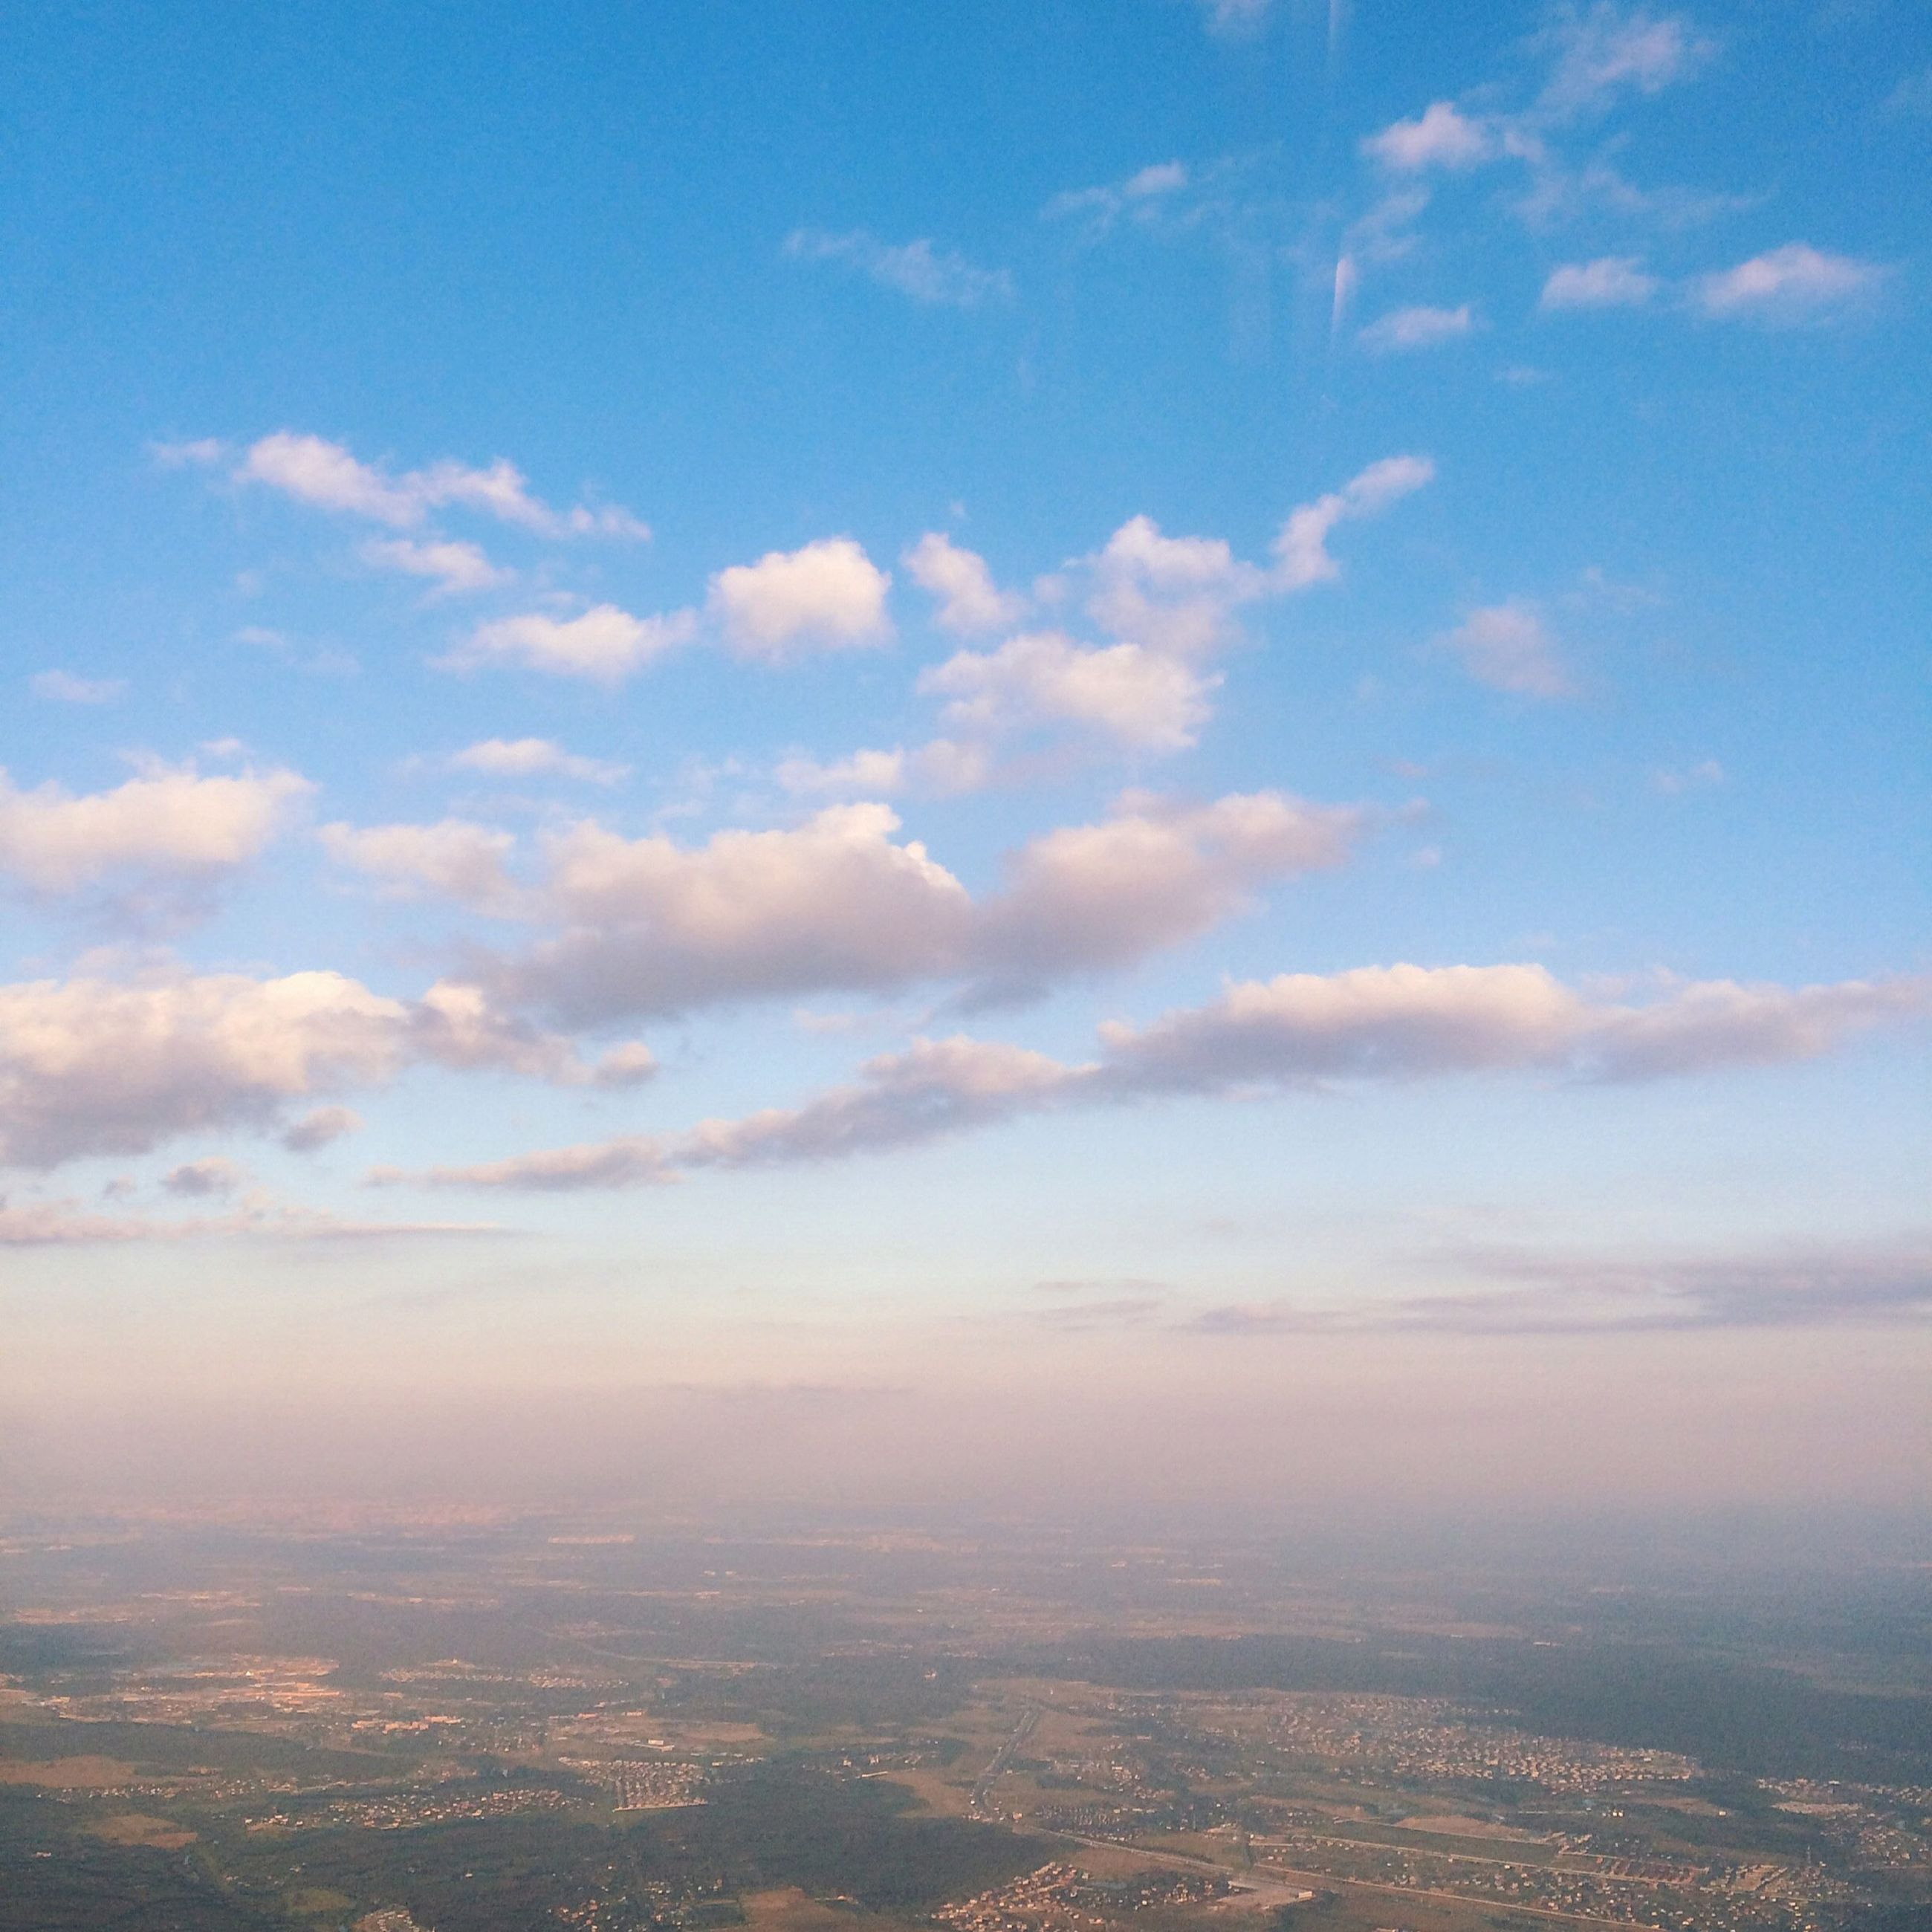 sky, aerial view, cloud - sky, blue, scenics, beauty in nature, tranquil scene, cloud, cityscape, nature, tranquility, landscape, city, outdoors, no people, idyllic, cloudscape, high angle view, day, horizon over land